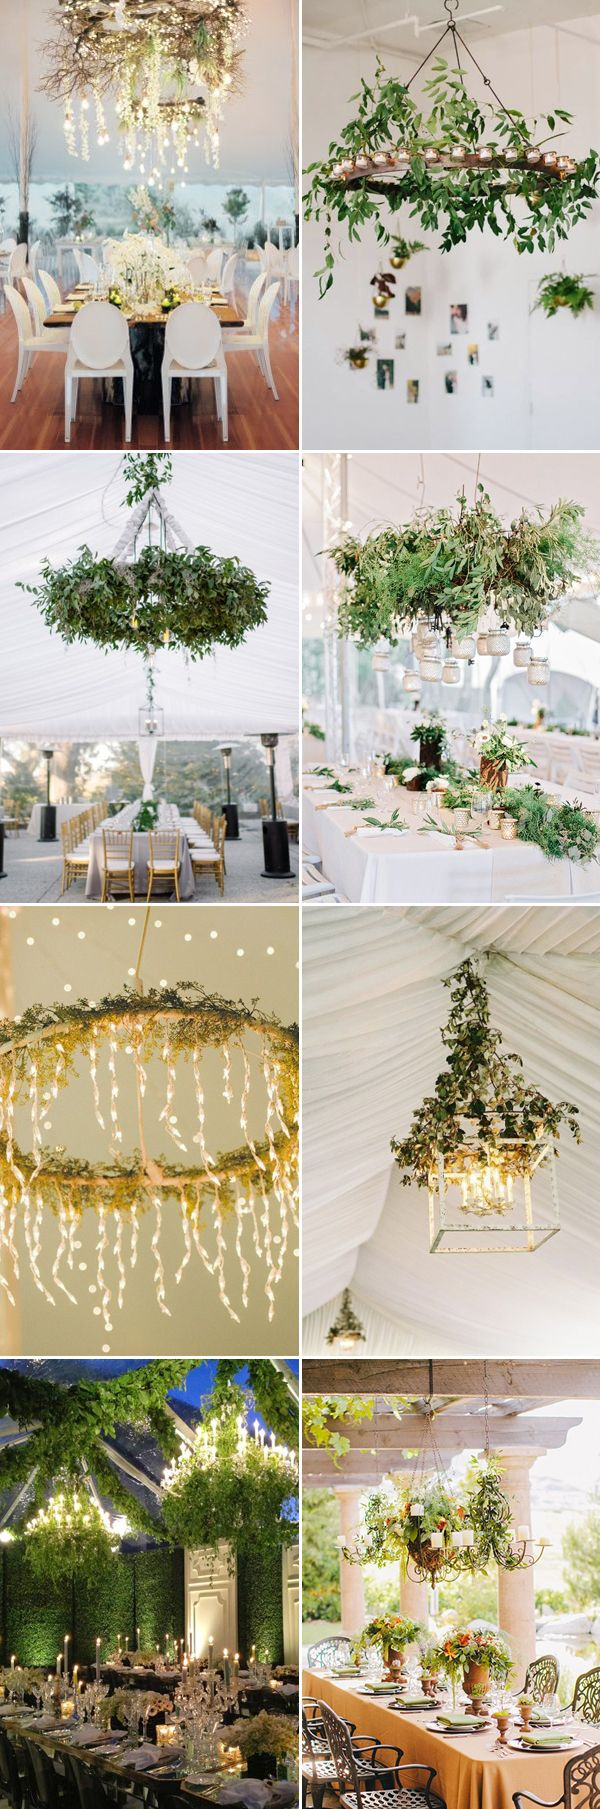 Fairytale Lighting! 25 Romantic Wedding Chandelier Ideas